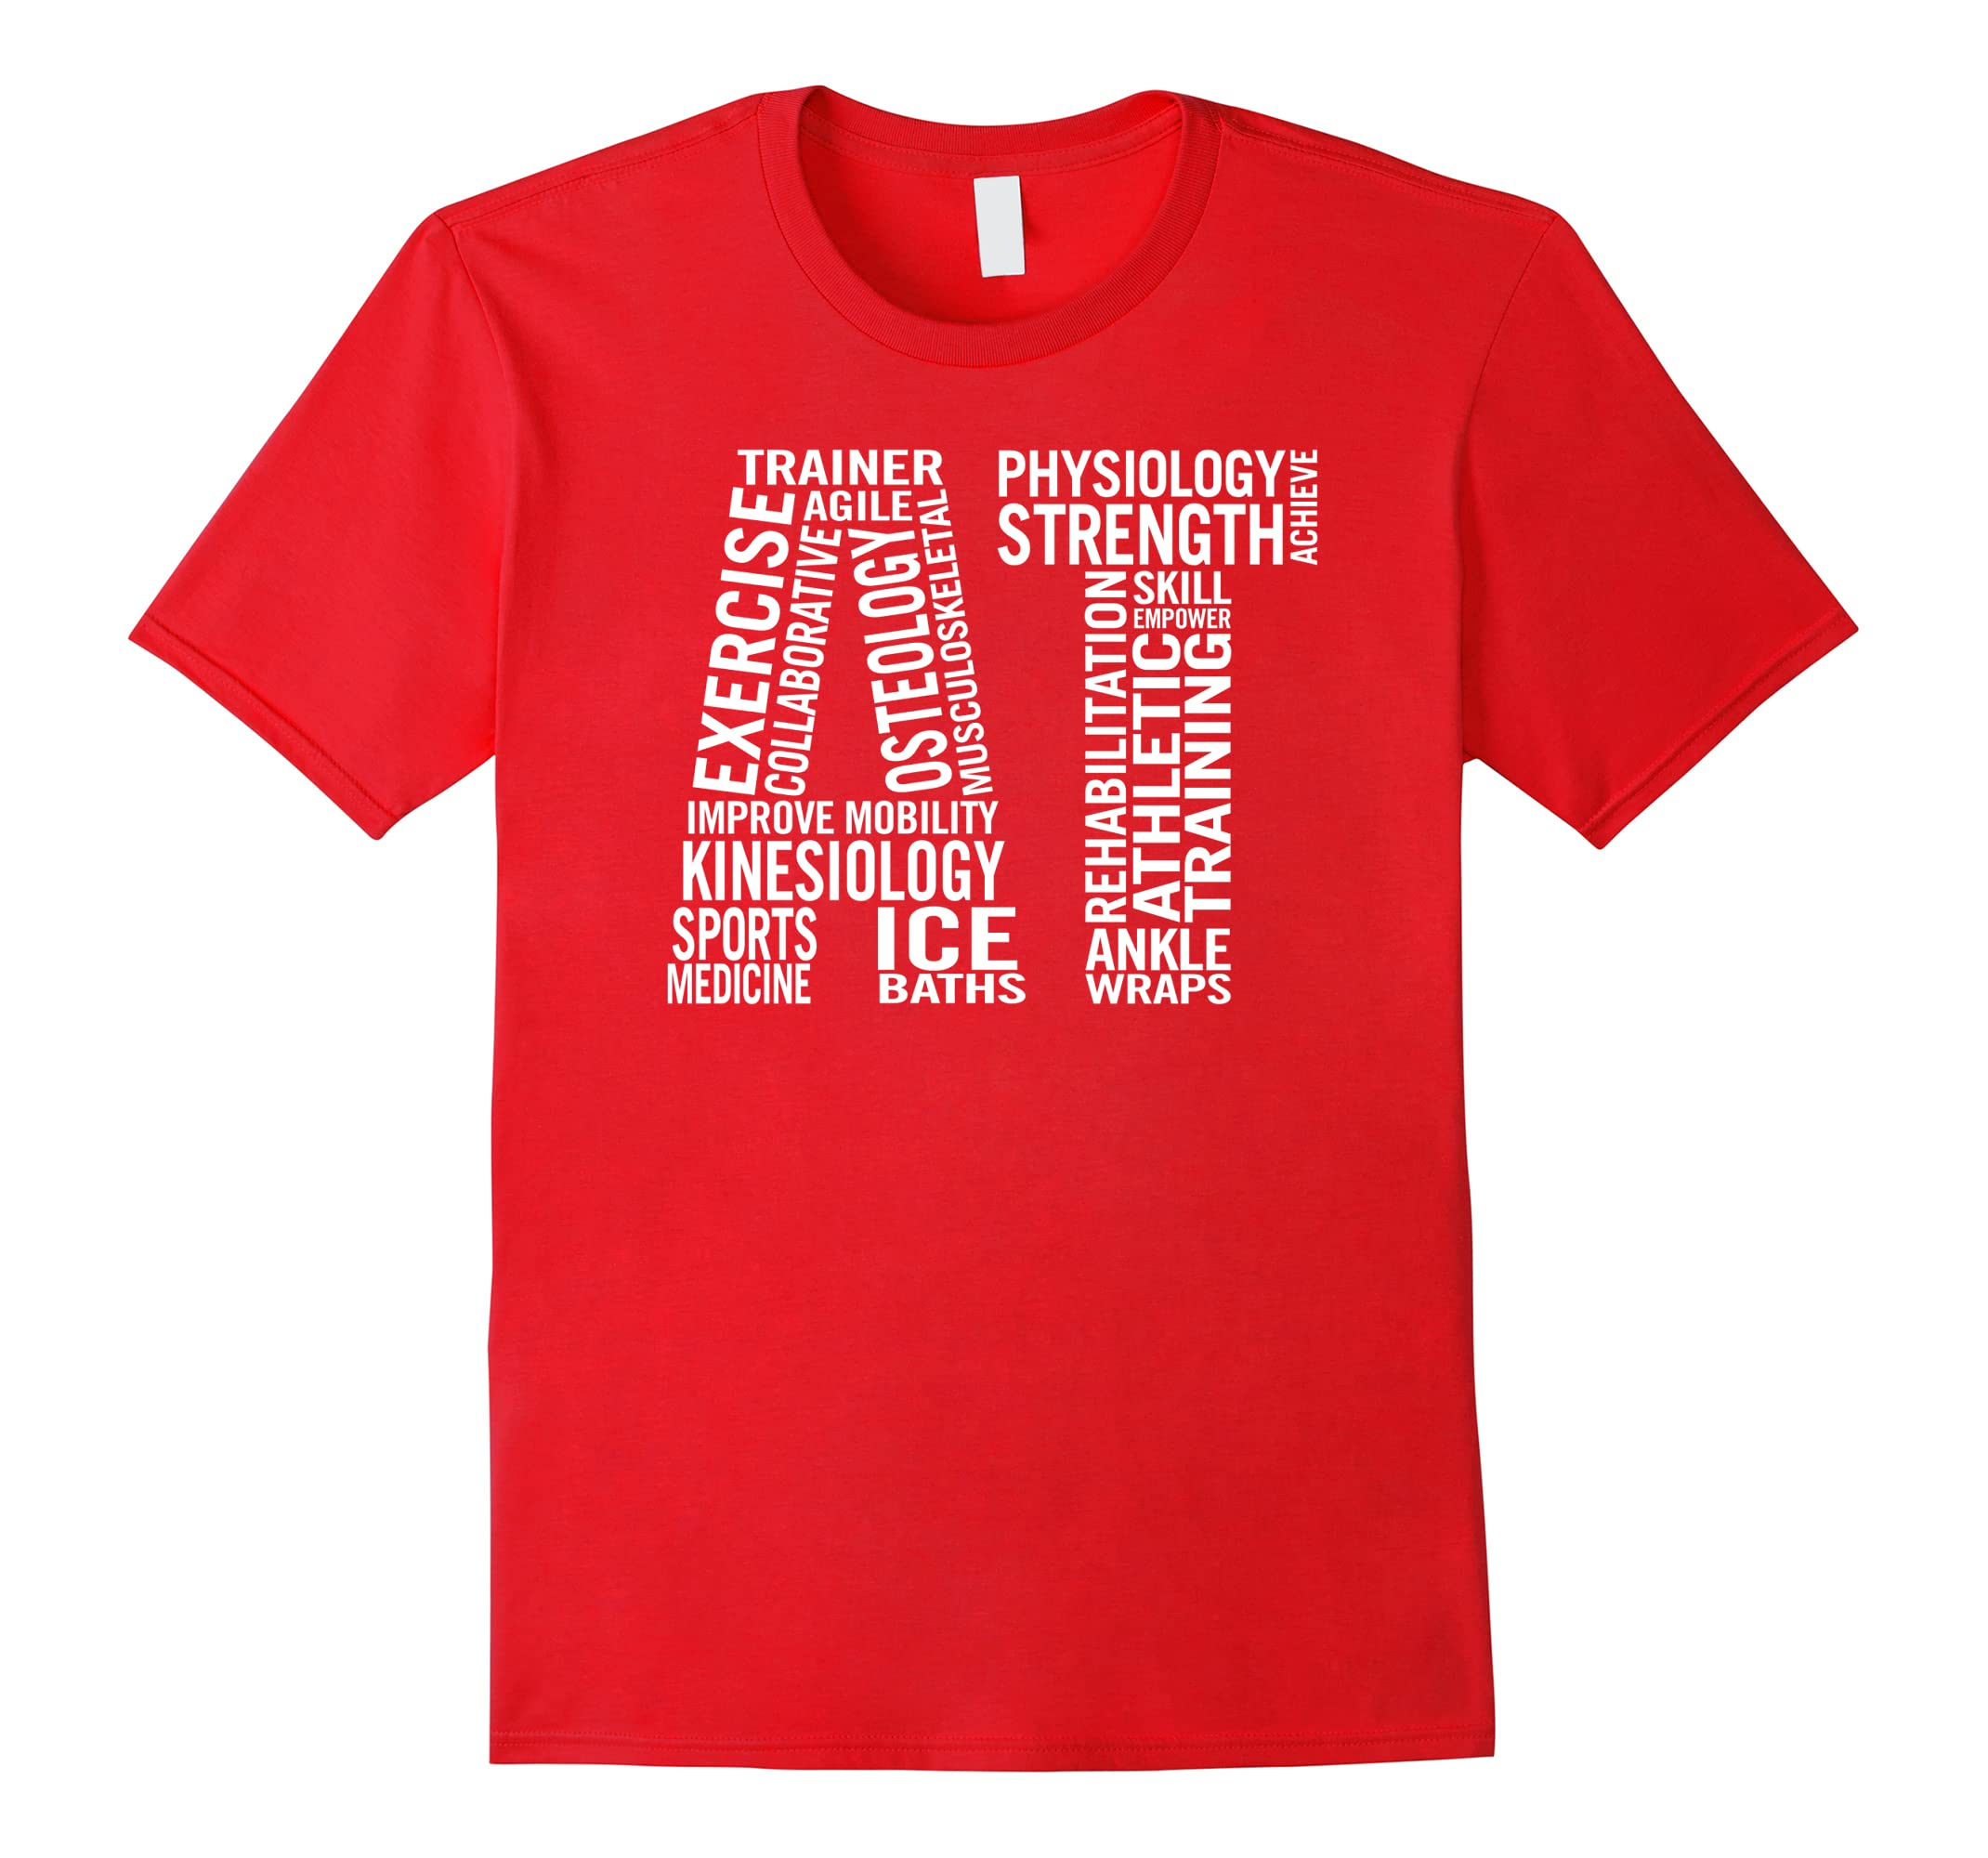 Athletic Trainer Shirt Athletic Training Gifts-ah my shirt one gift